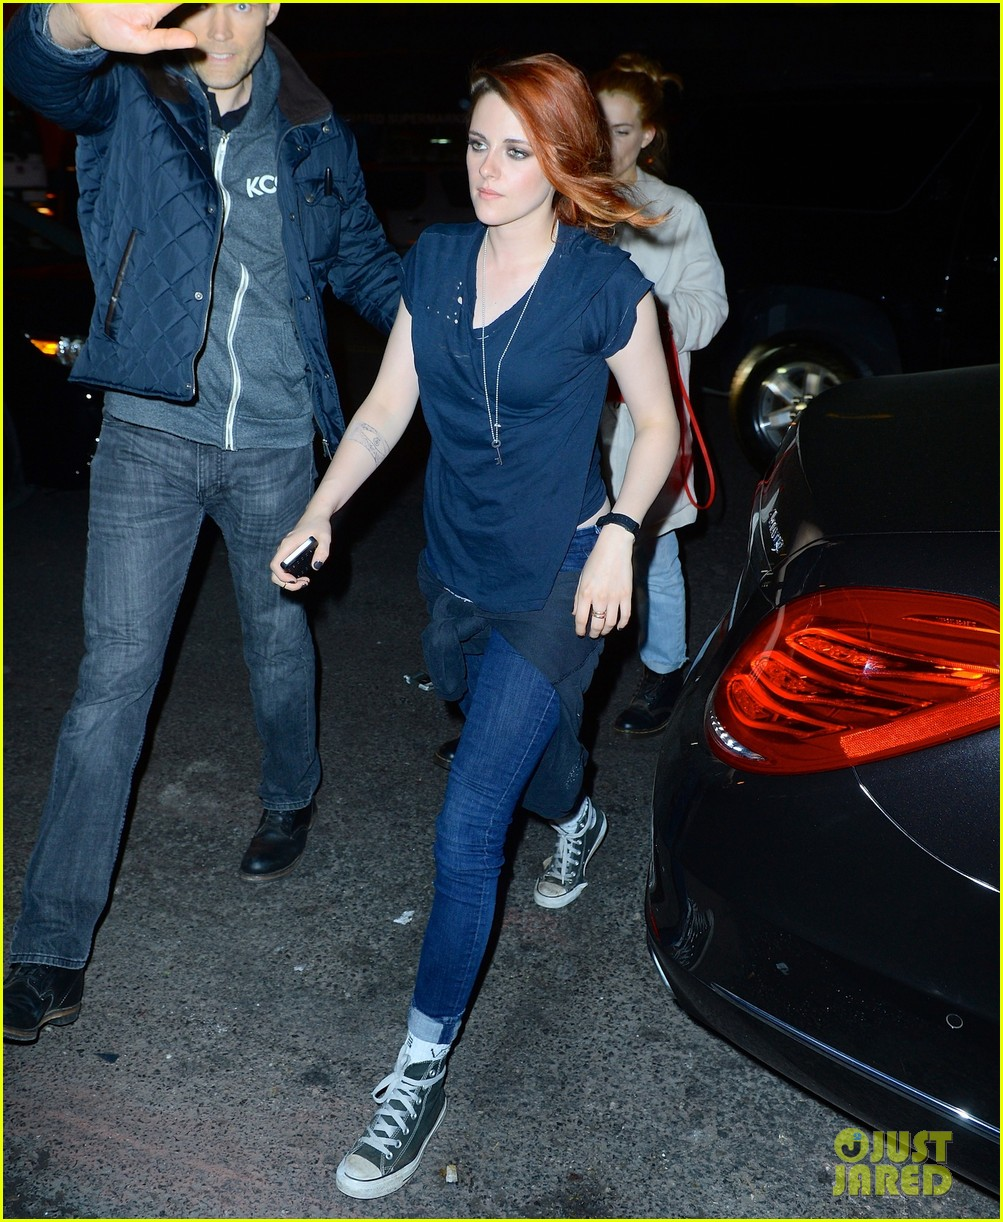 kristen stewart goes casual with riley keough at met ball 2014 after party 02